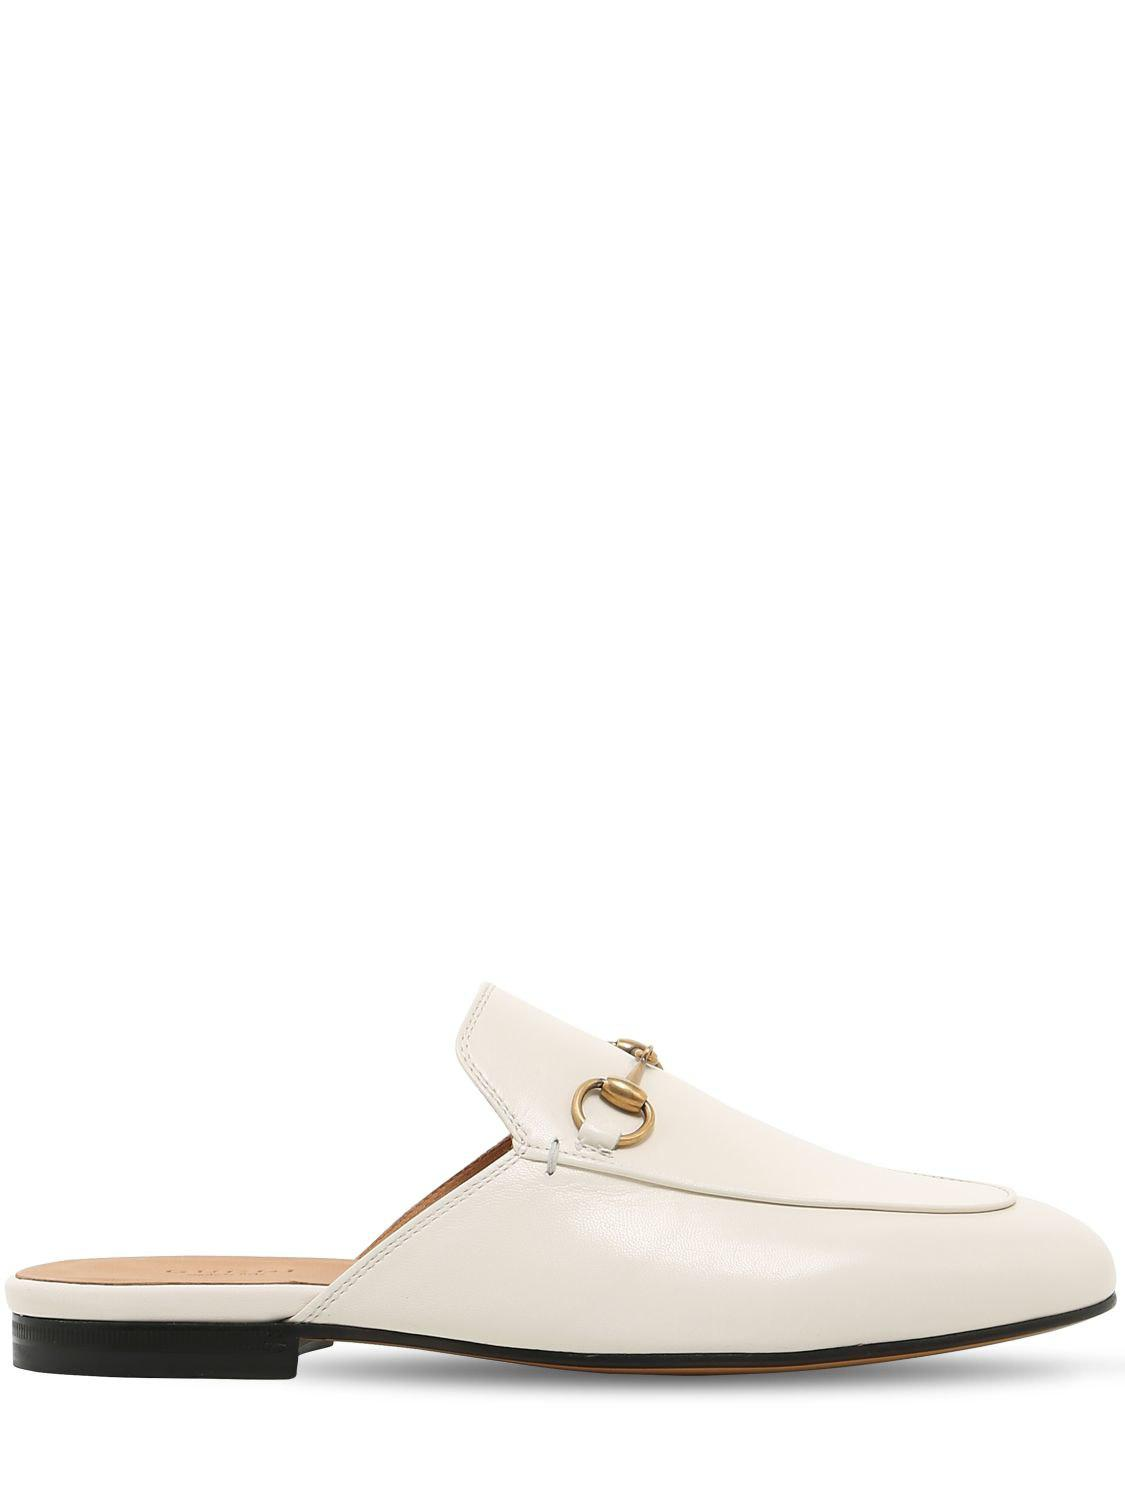 000864401cd Lyst - Gucci Princetown Loafer Mule in White